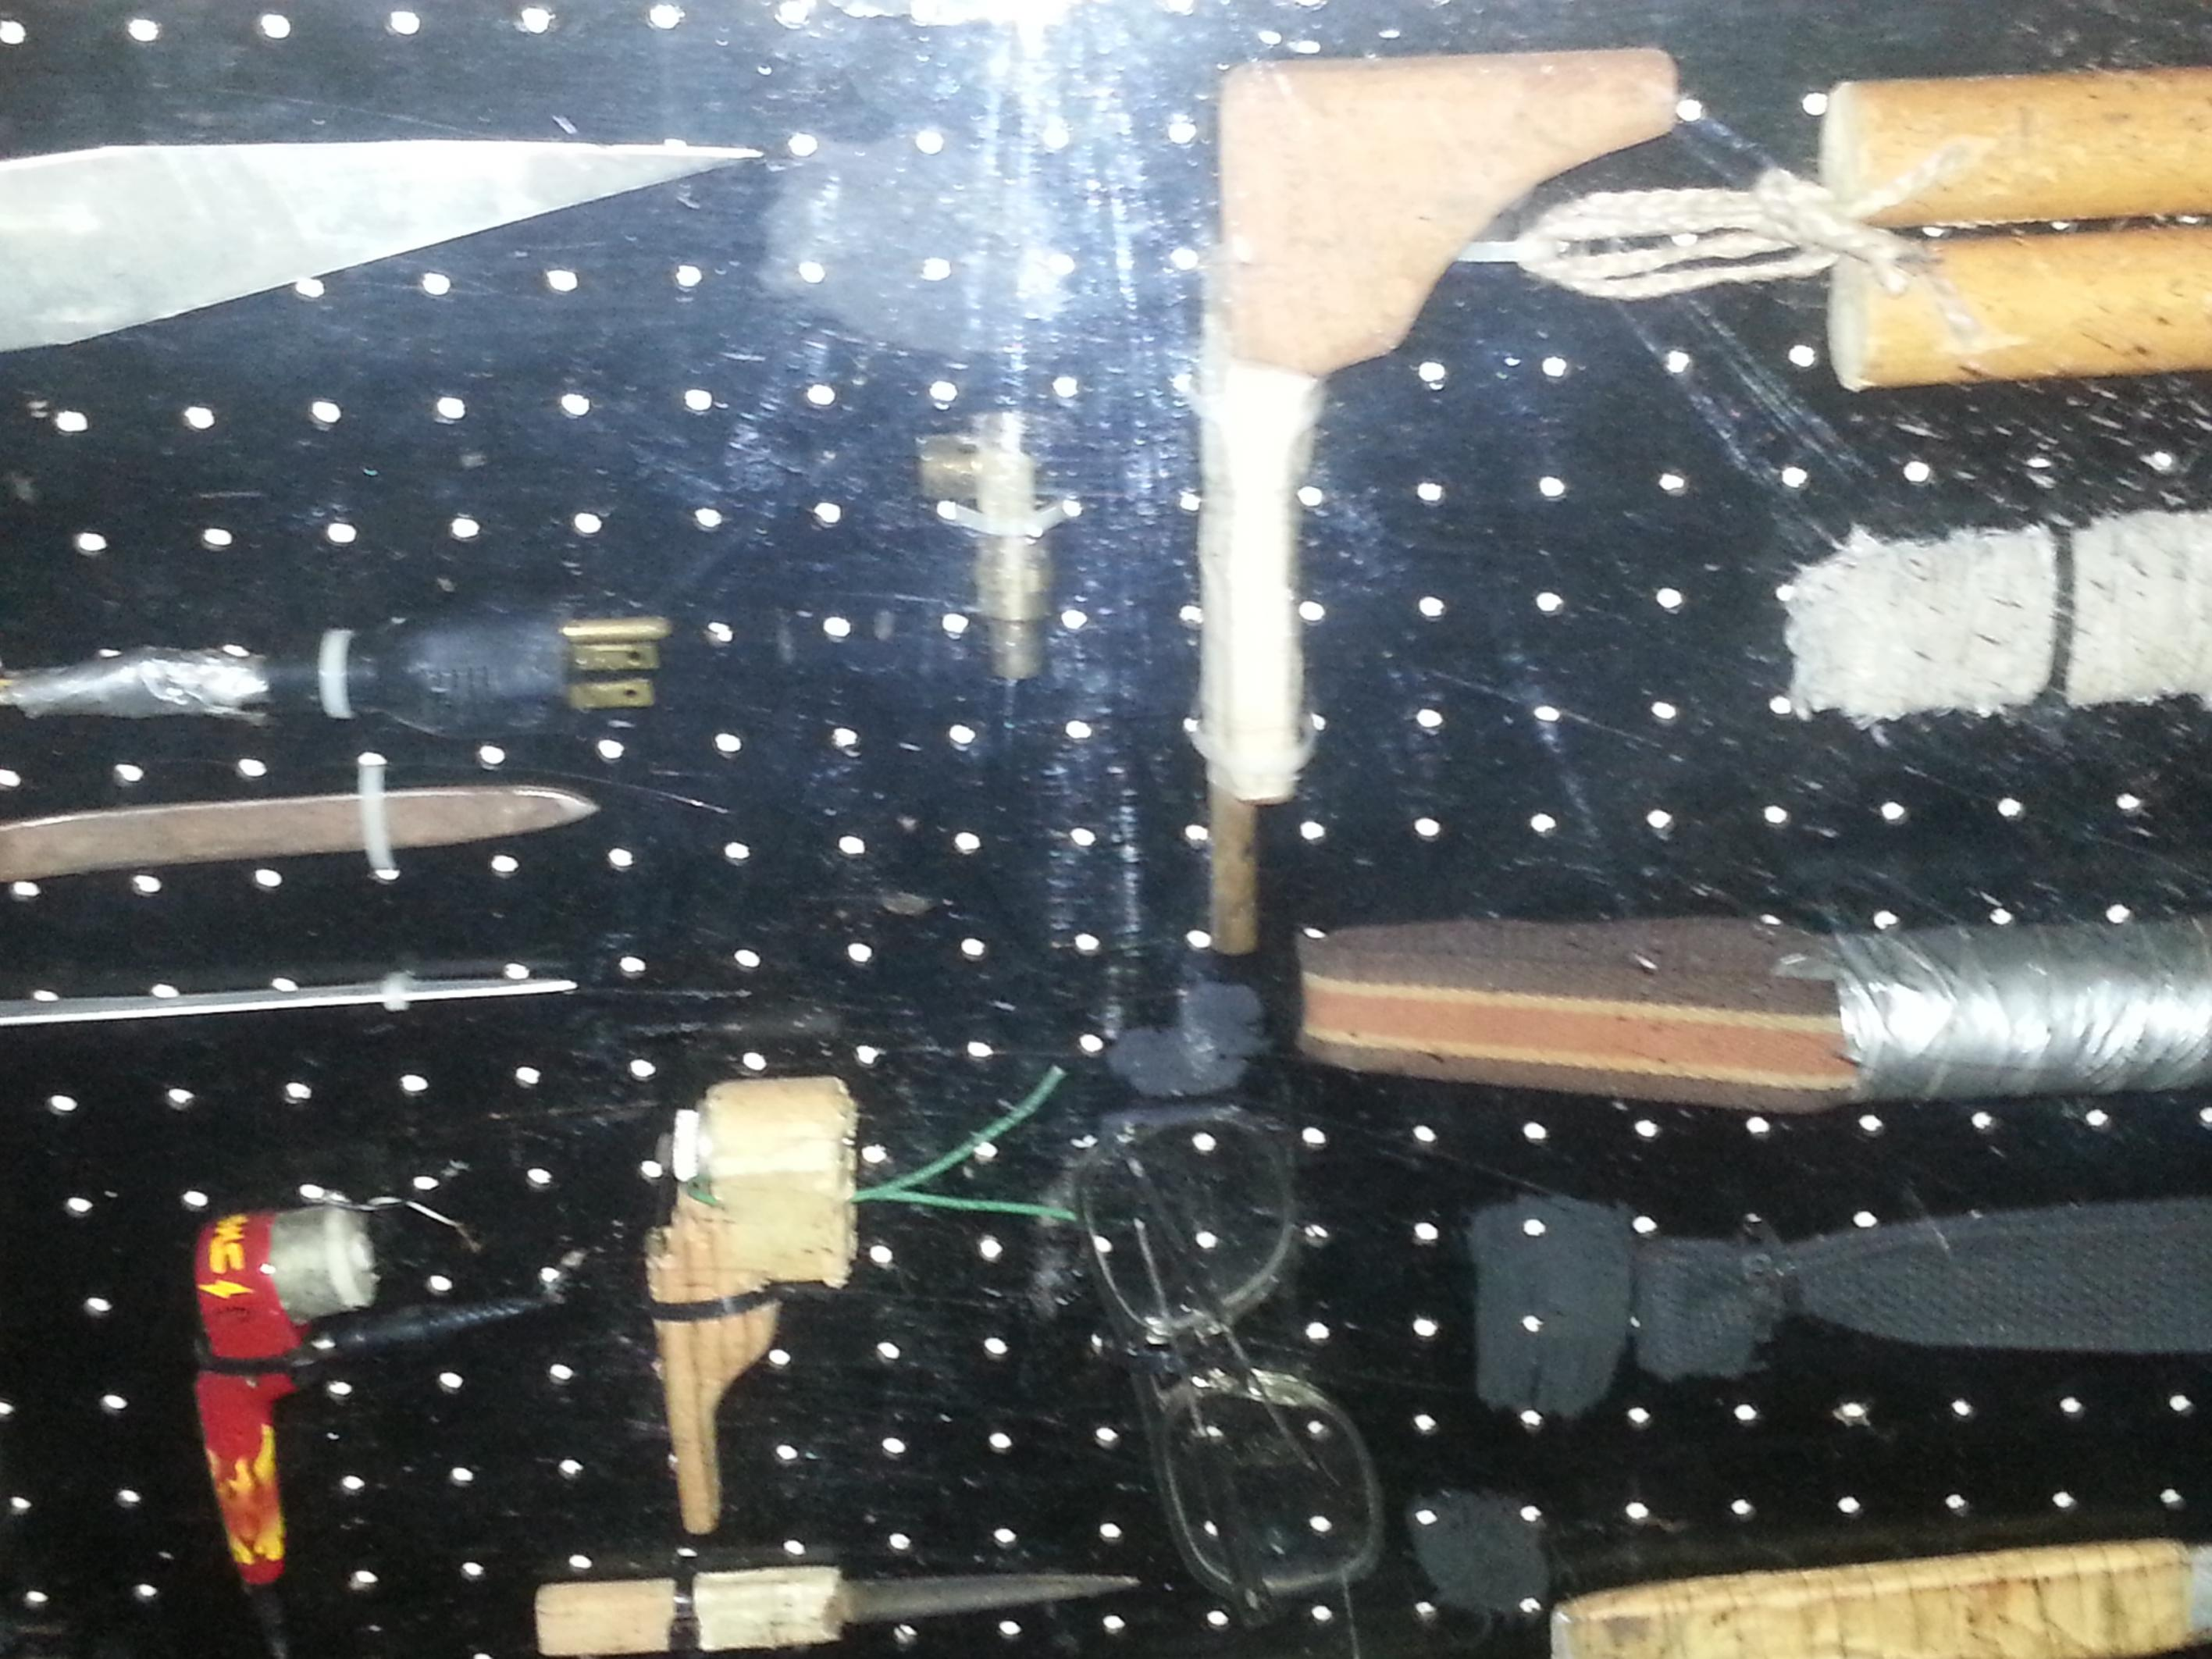 Prison weapons, with pics.-20130921_163454.jpg